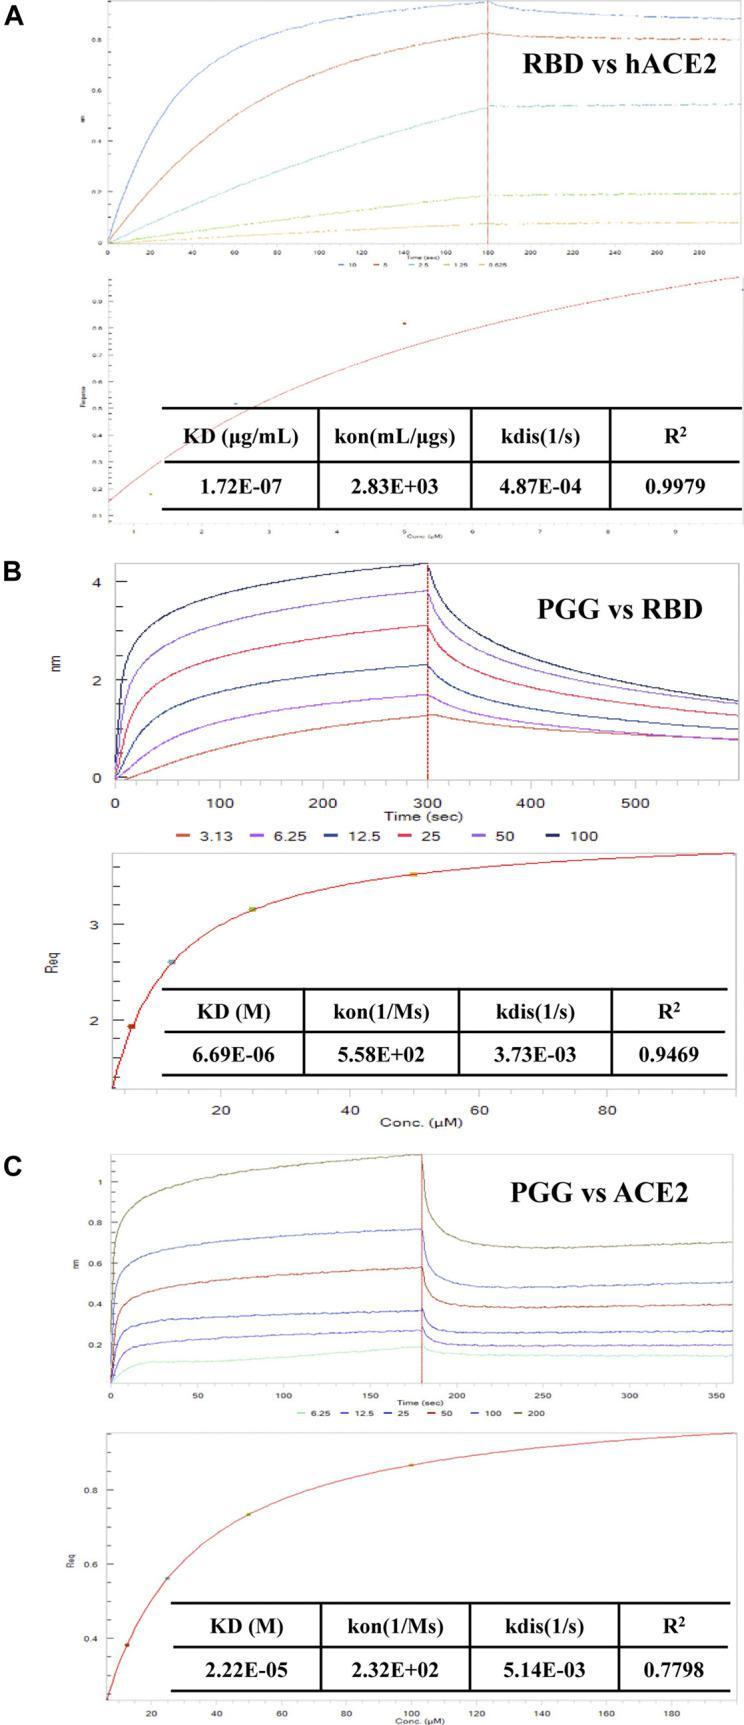 Effect of PGG on the interaction of Spike-RBD peptide and hACE2 receptor. (A) BLI was used to monitor the binding association of SARS-CoV-2 RBD and hACE2. (B) The binding kinetics and steady-state analysis of the interaction between immobilized RBD and PGG at indicated concentrations. (C) The binding kinetics and steady-state analysis of the interaction between immobilized ACE2 and PGG at indicated concentrations. Representative results were shown from 3 independent experiments.